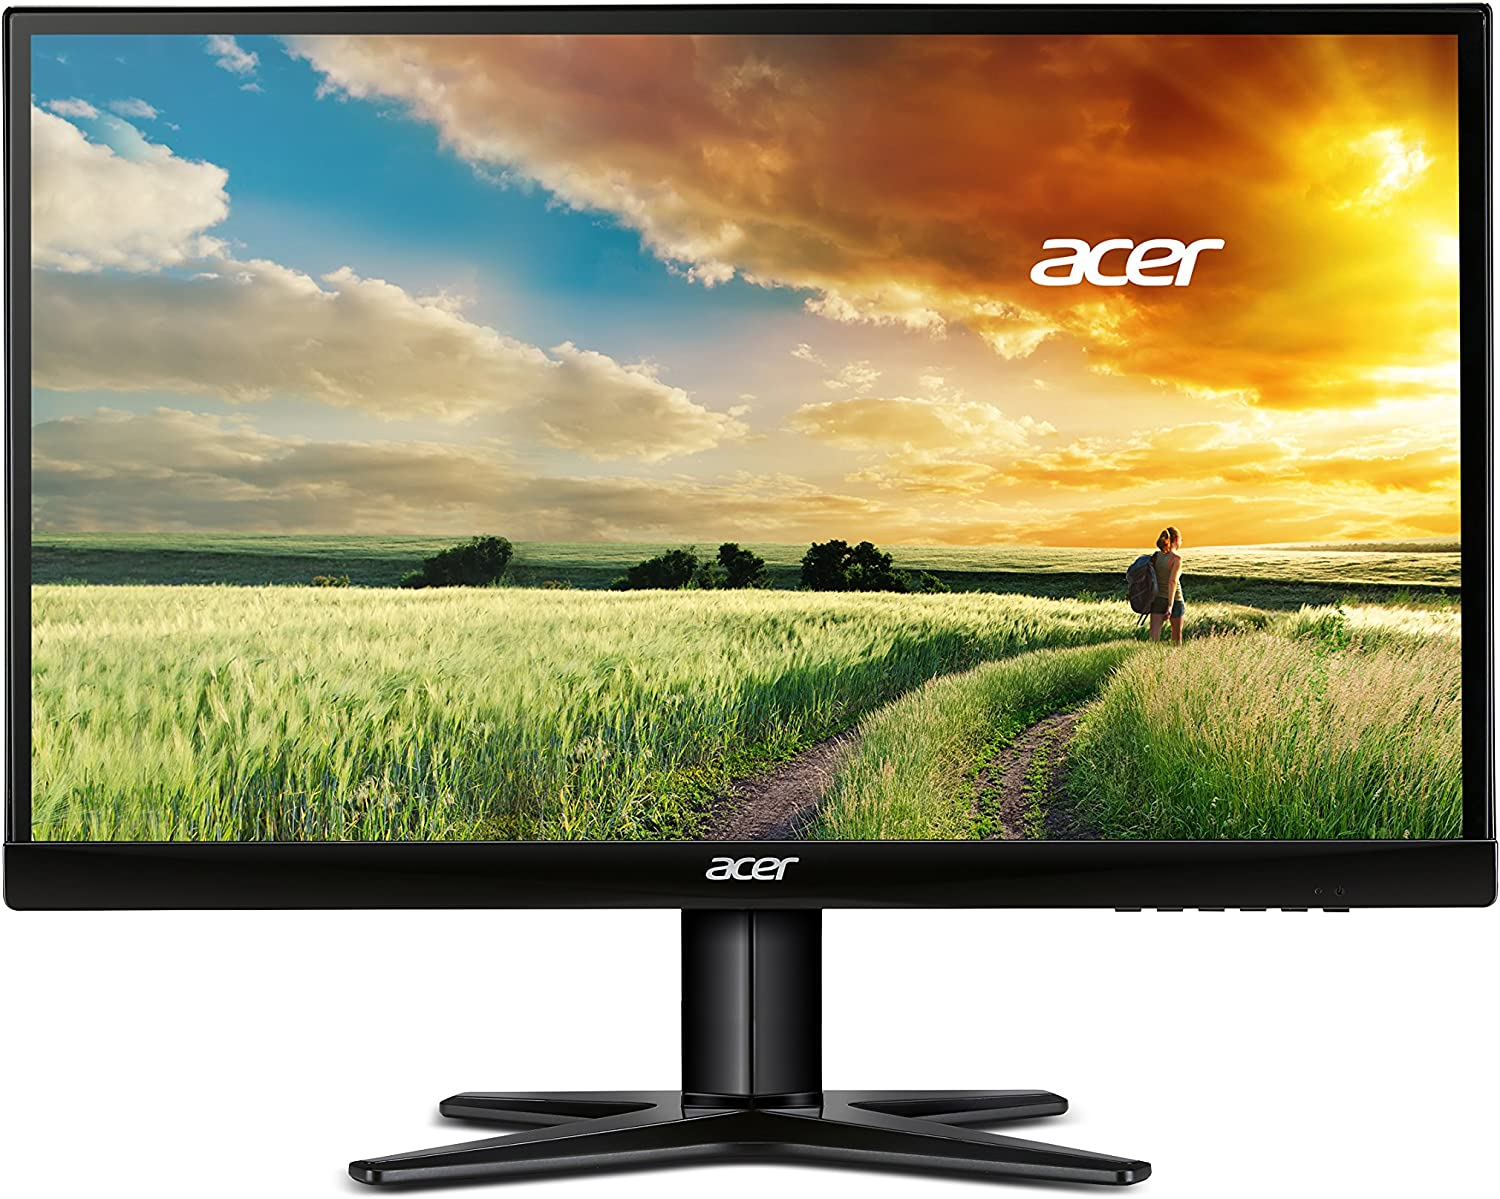 Acer G257HL bmidx 25-Inch Full HD (1920 x 1080) Widescreen Display